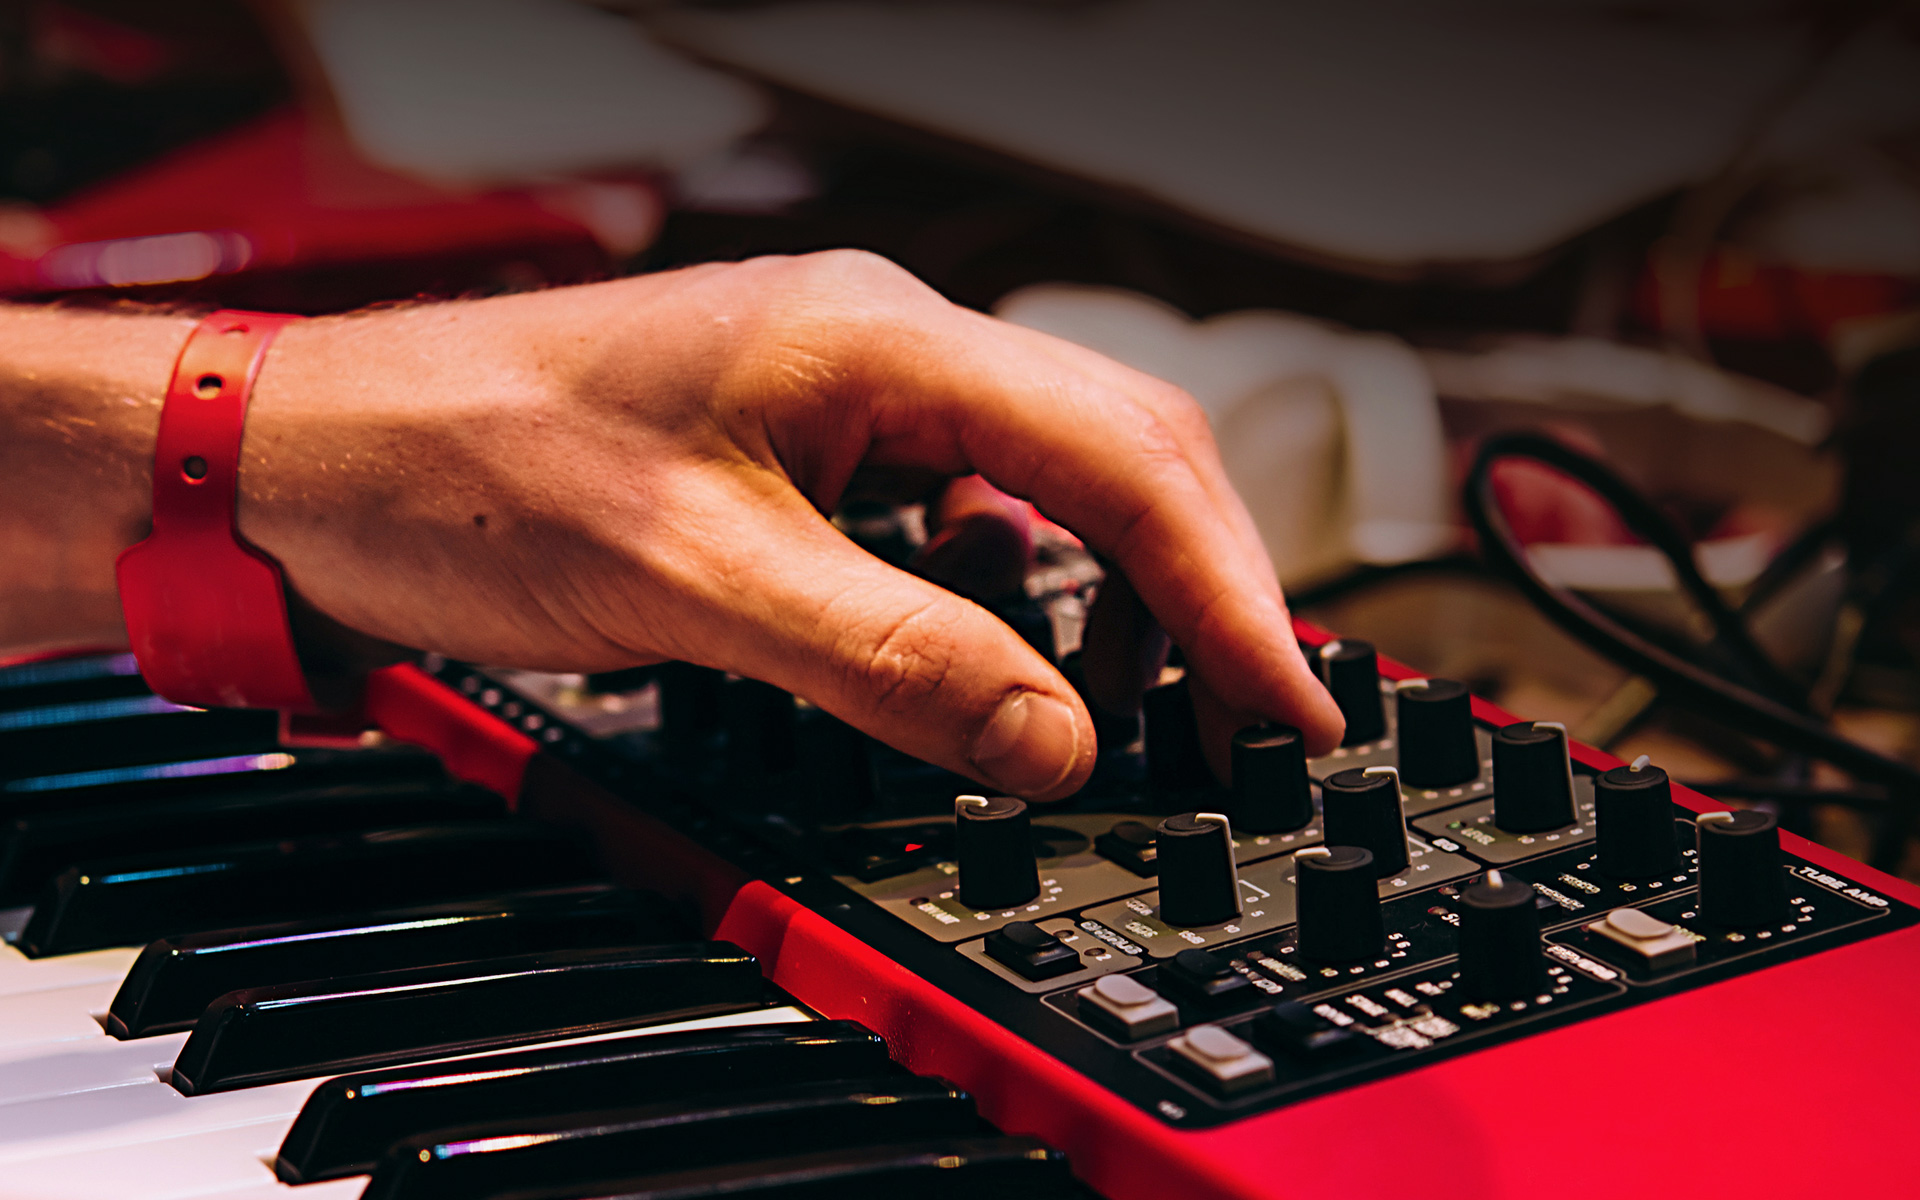 An electronic musician composing house music on a synthesizer.